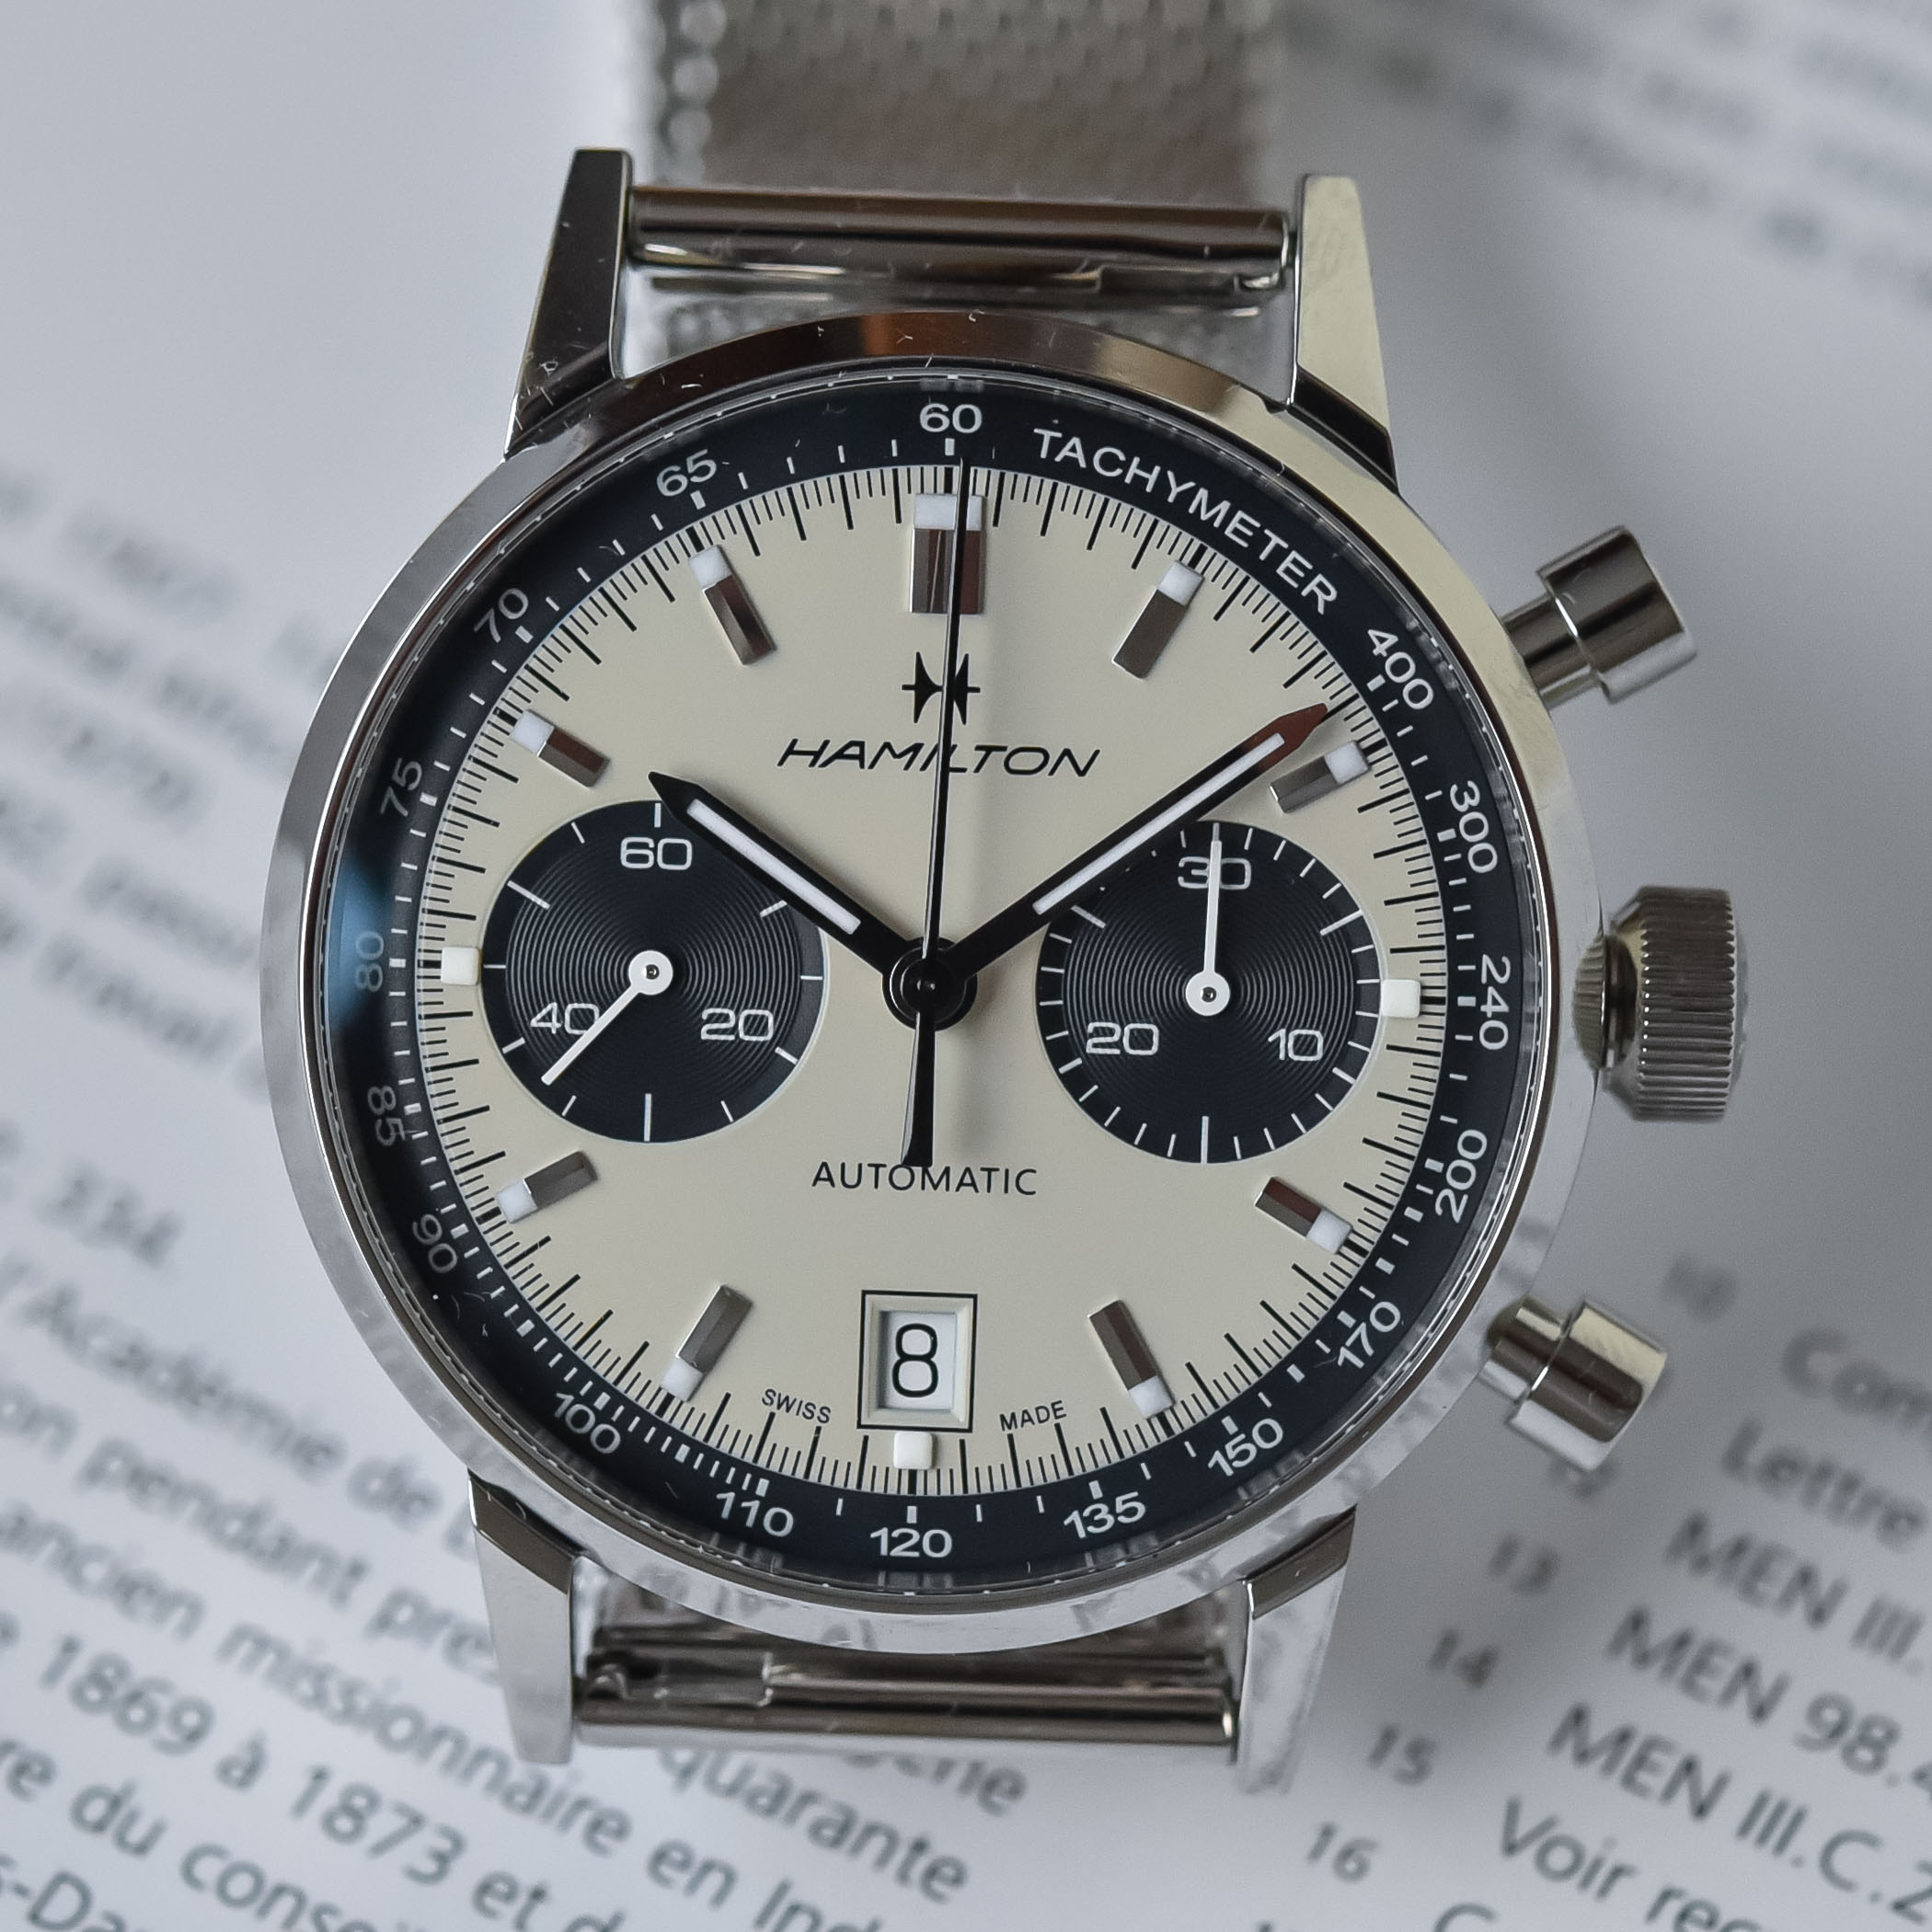 Hamilton Intra-Matic Automatic Chronograph 40mm 2021 collection - H38416111 - H38416141 - 3